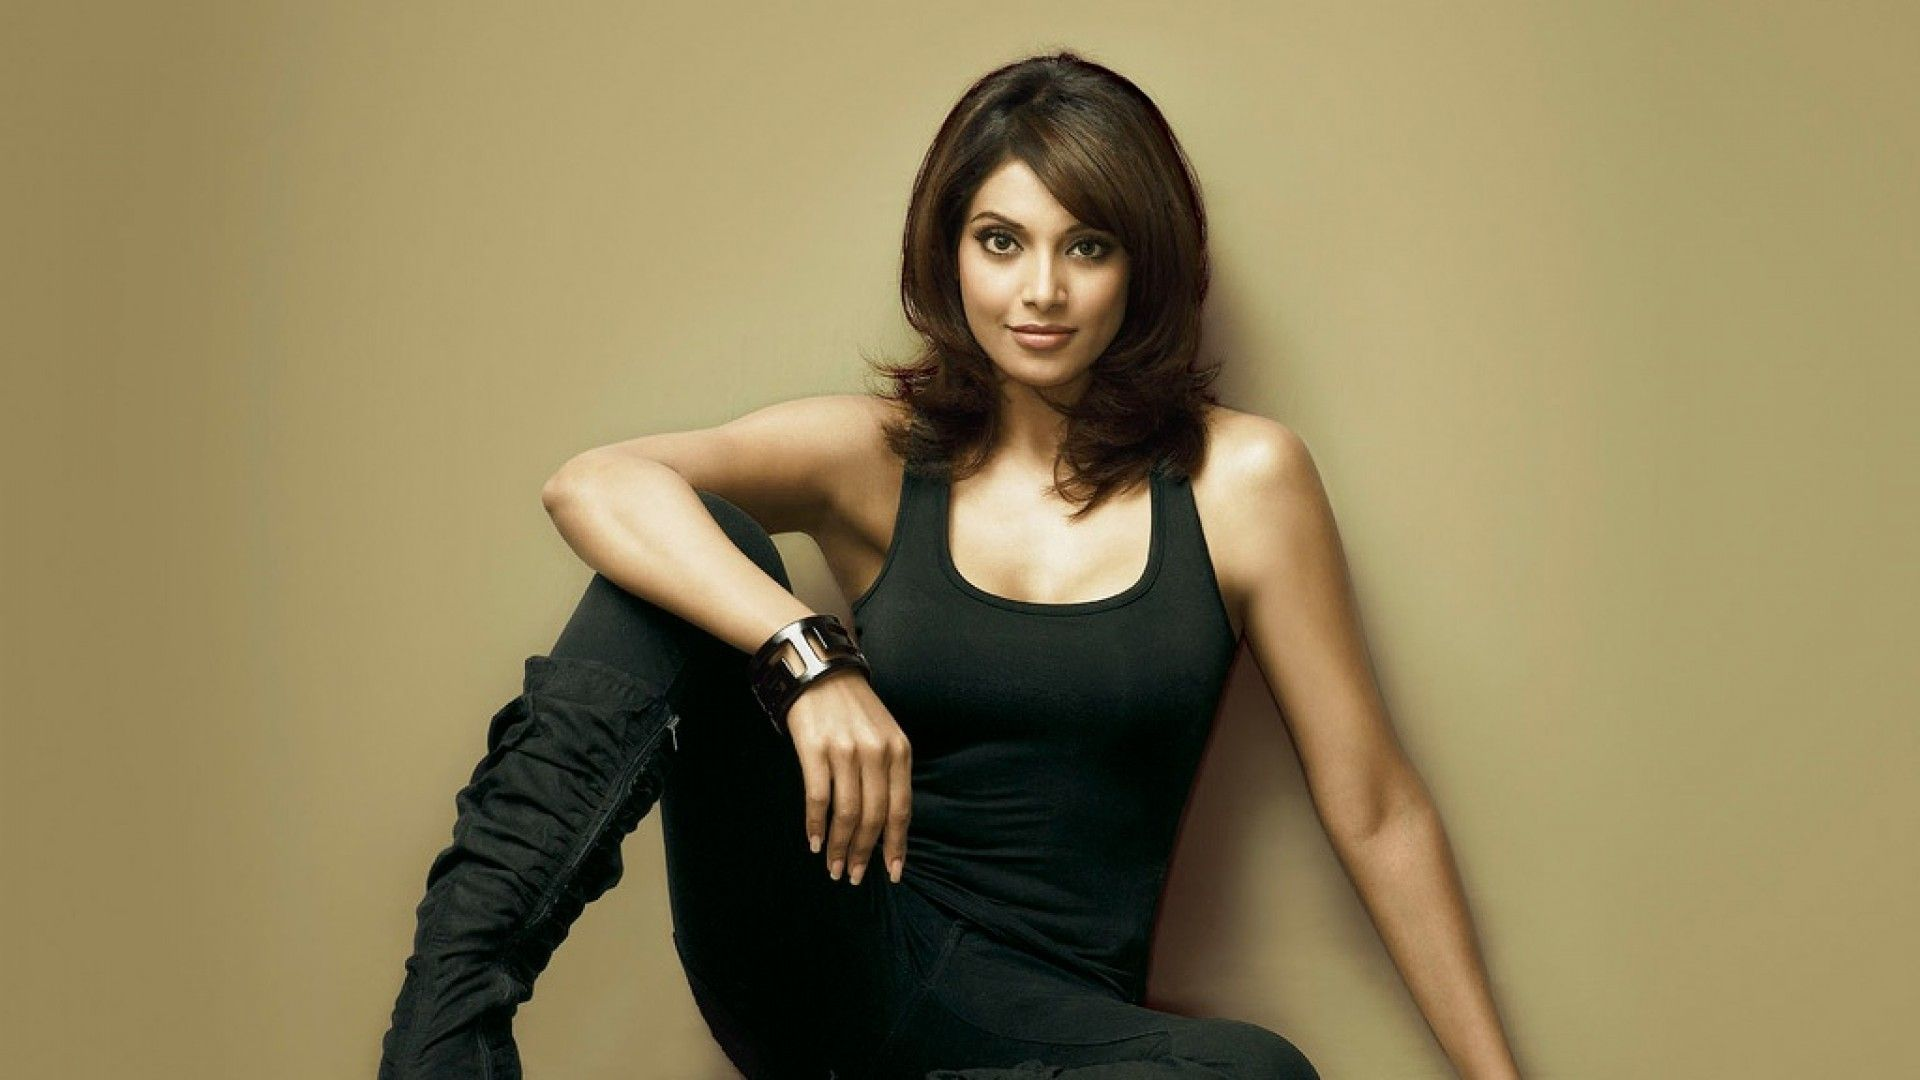 Bipasha basu black dress wallpaper